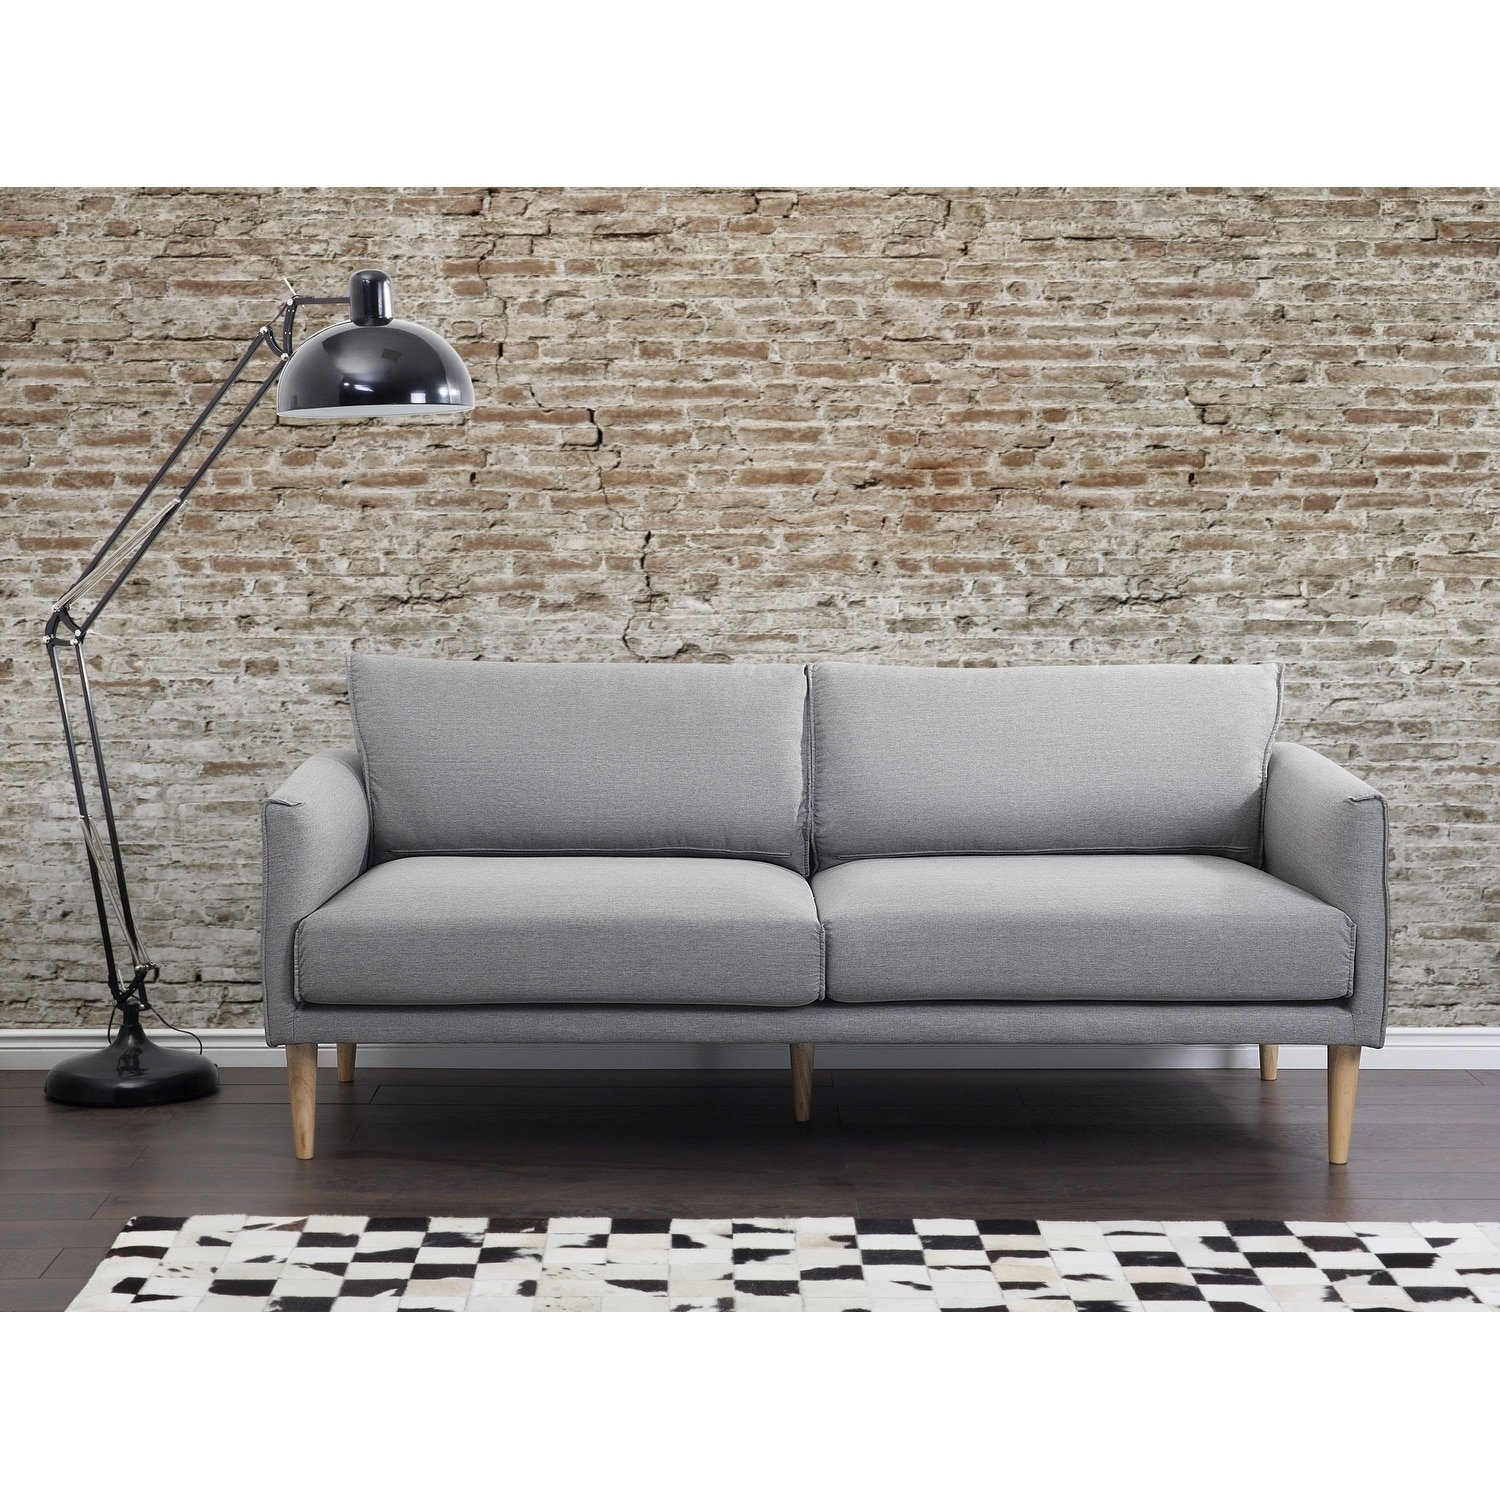 Modern Fabric Sofa Gray Uppsala Free Shipping Today 18824248